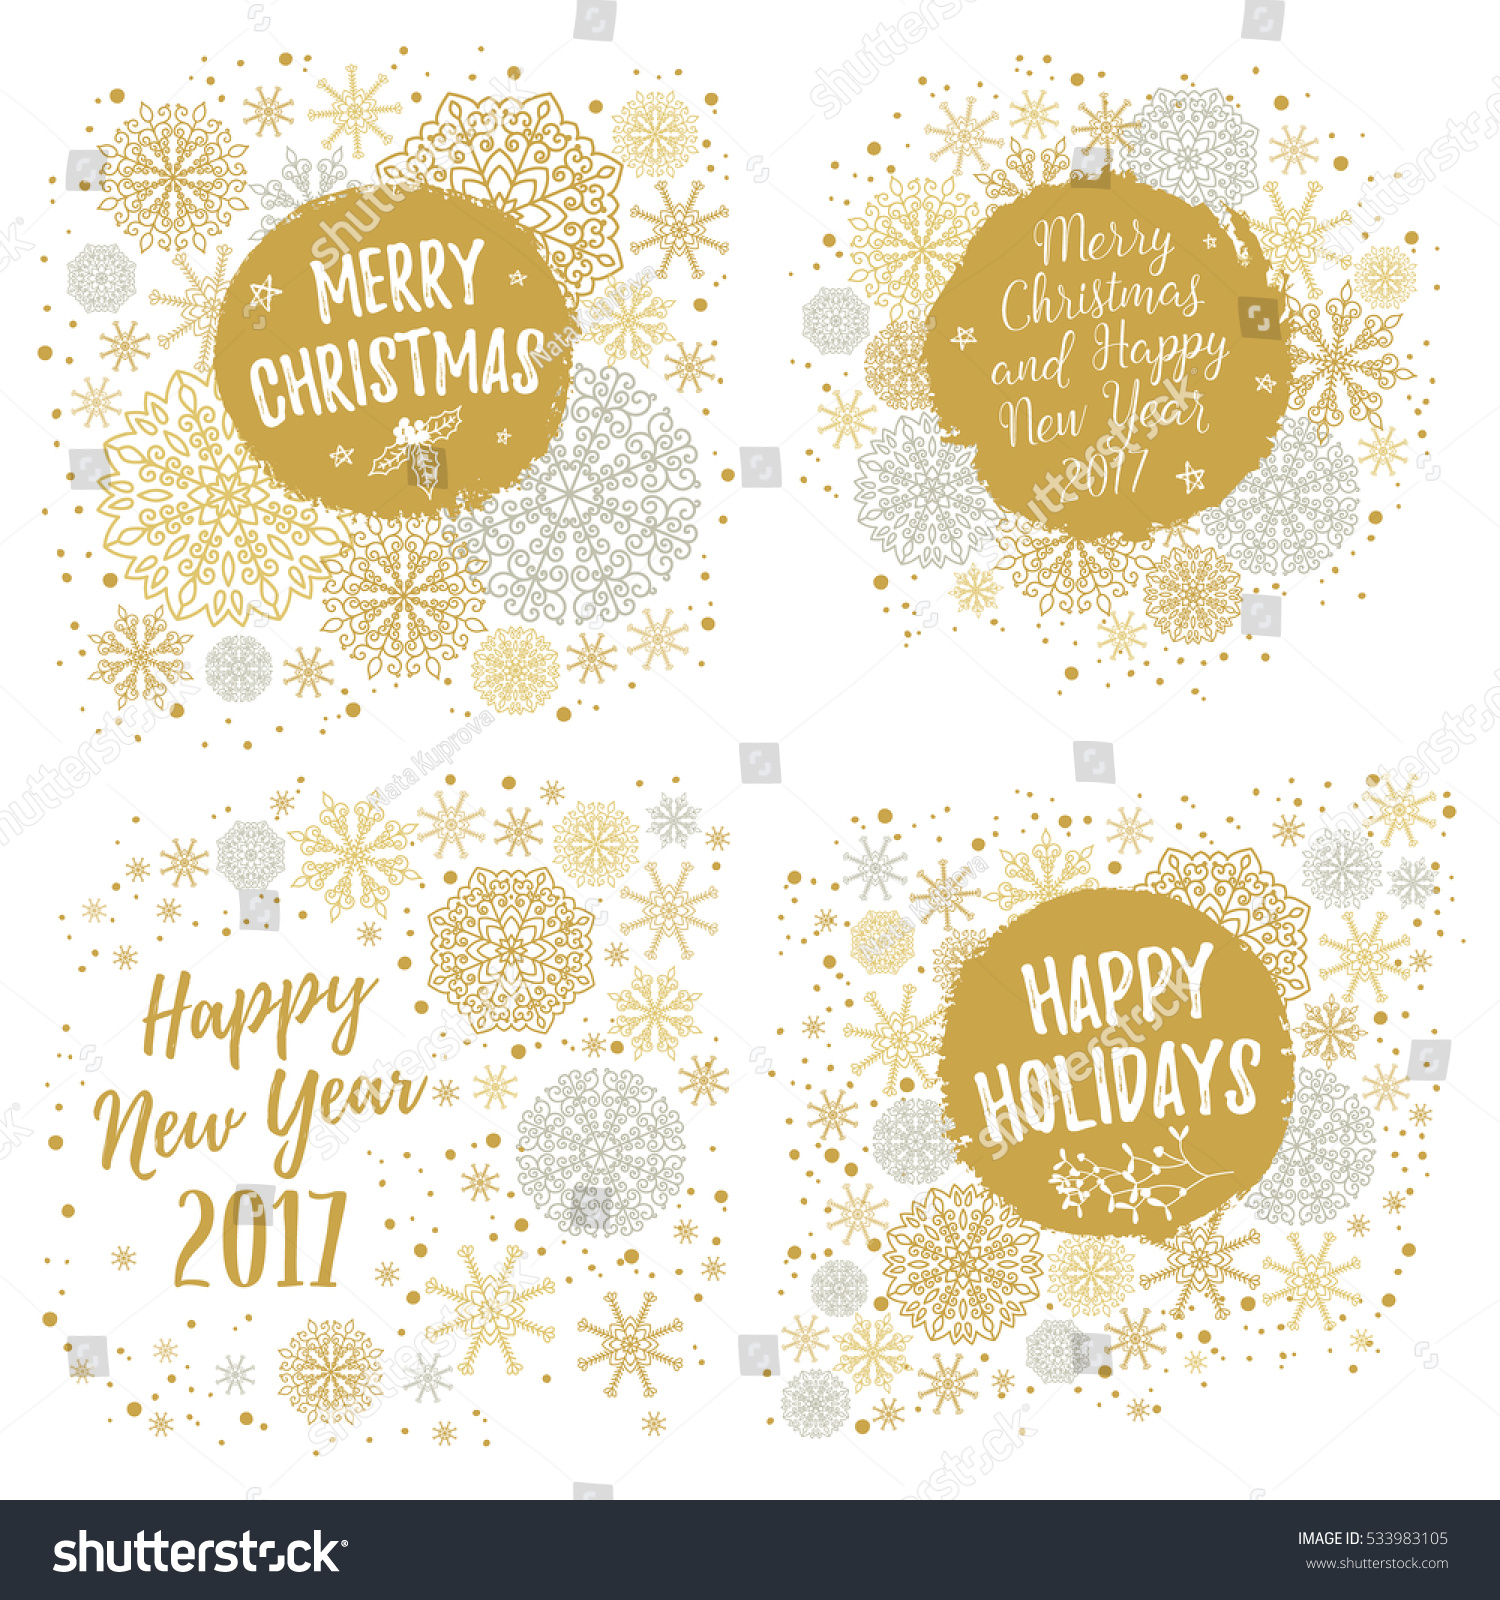 Merry Christmas Happy Holidays Happy New Stock Vector (Royalty Free ...